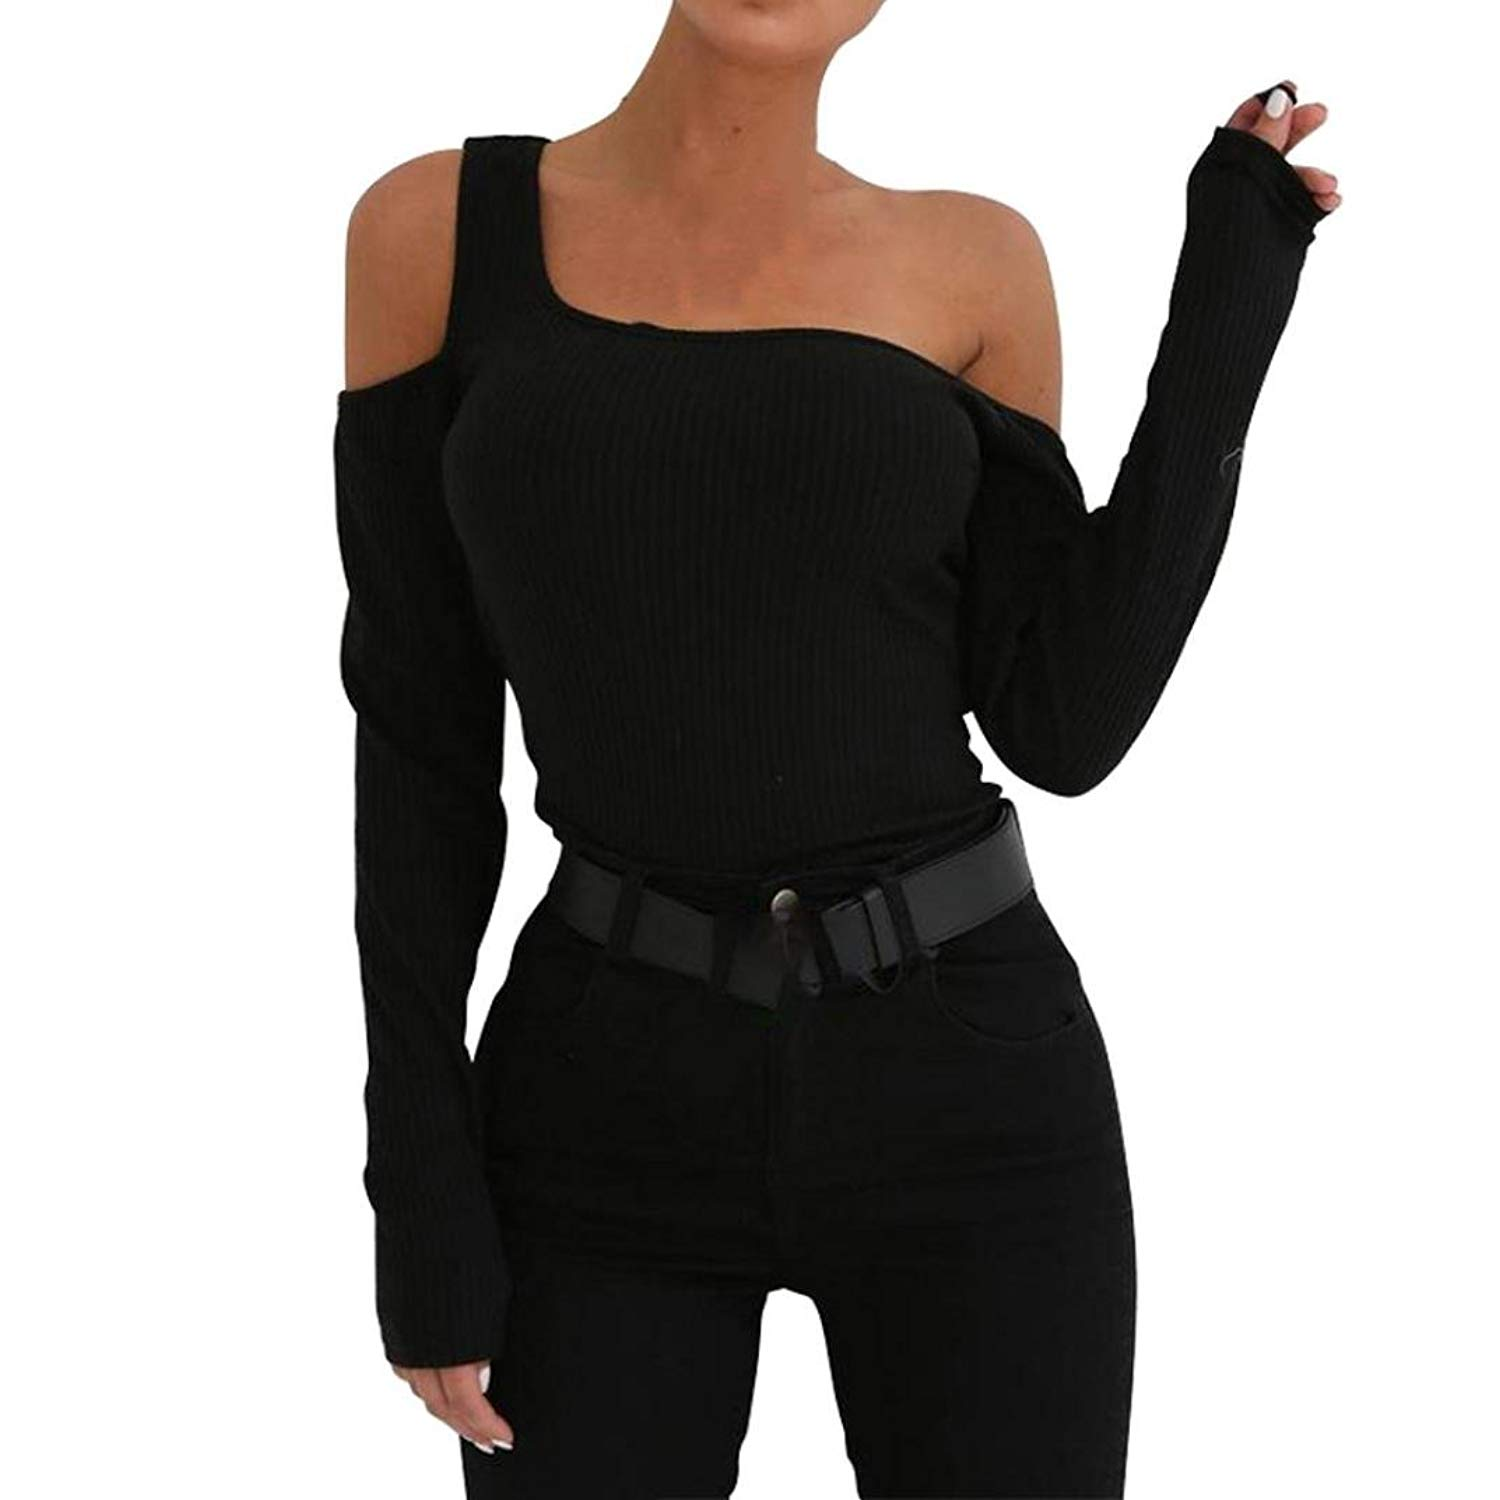 6f107a26019 Cheap Teen In Crop Top, find Teen In Crop Top deals on line at ...